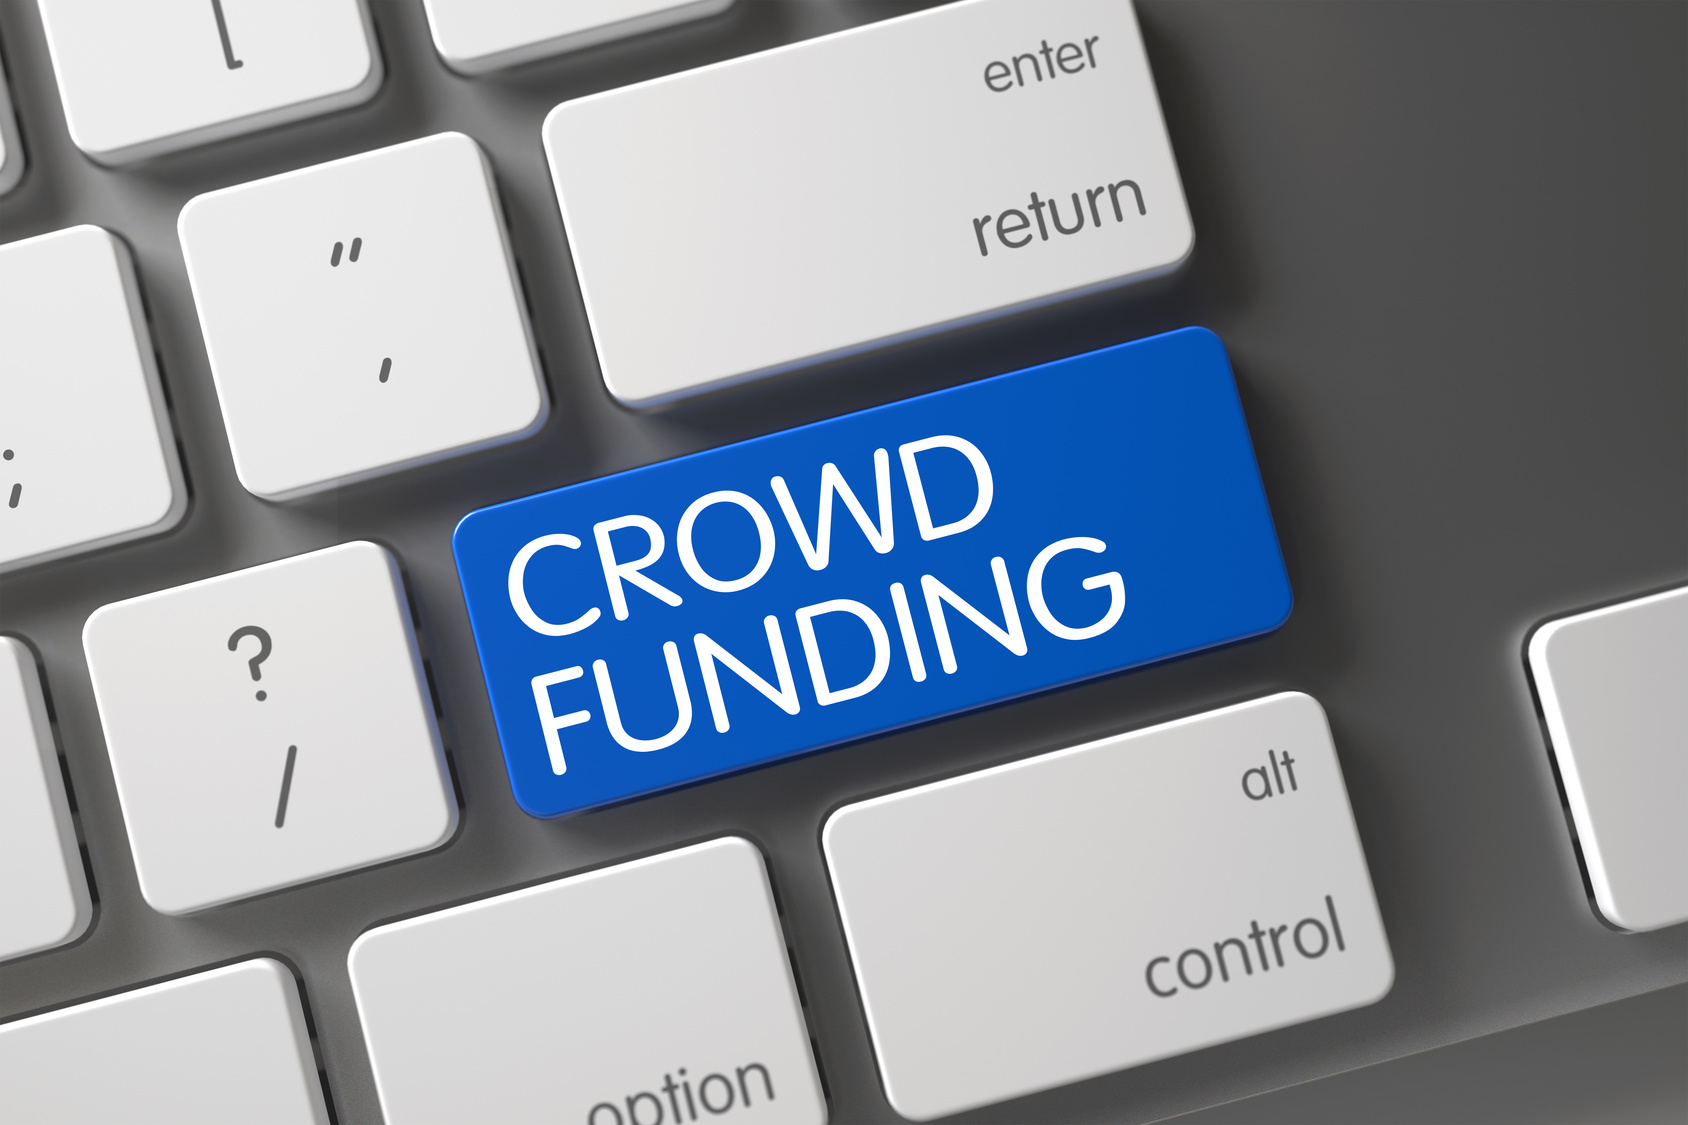 Crowd Funding Button. Crowd Funding Key on Aluminum Keyboard. Crowd Funding Concept Computer Keyboard with Crowd Funding on Blue Enter Key Background, Selected Focus. 3D Render.